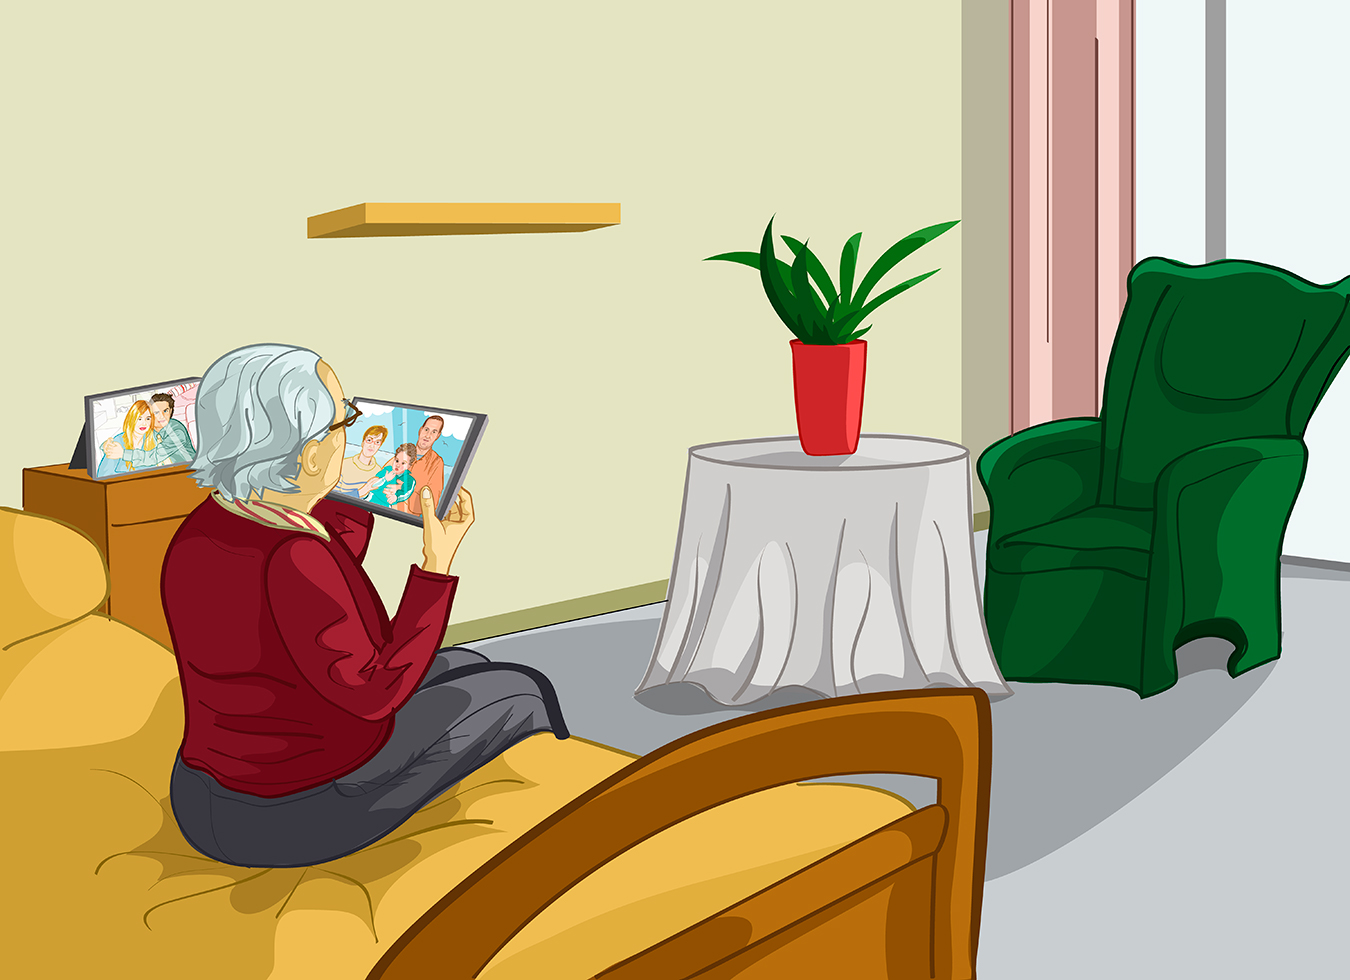 Nursing homes in 26 states allow visitors